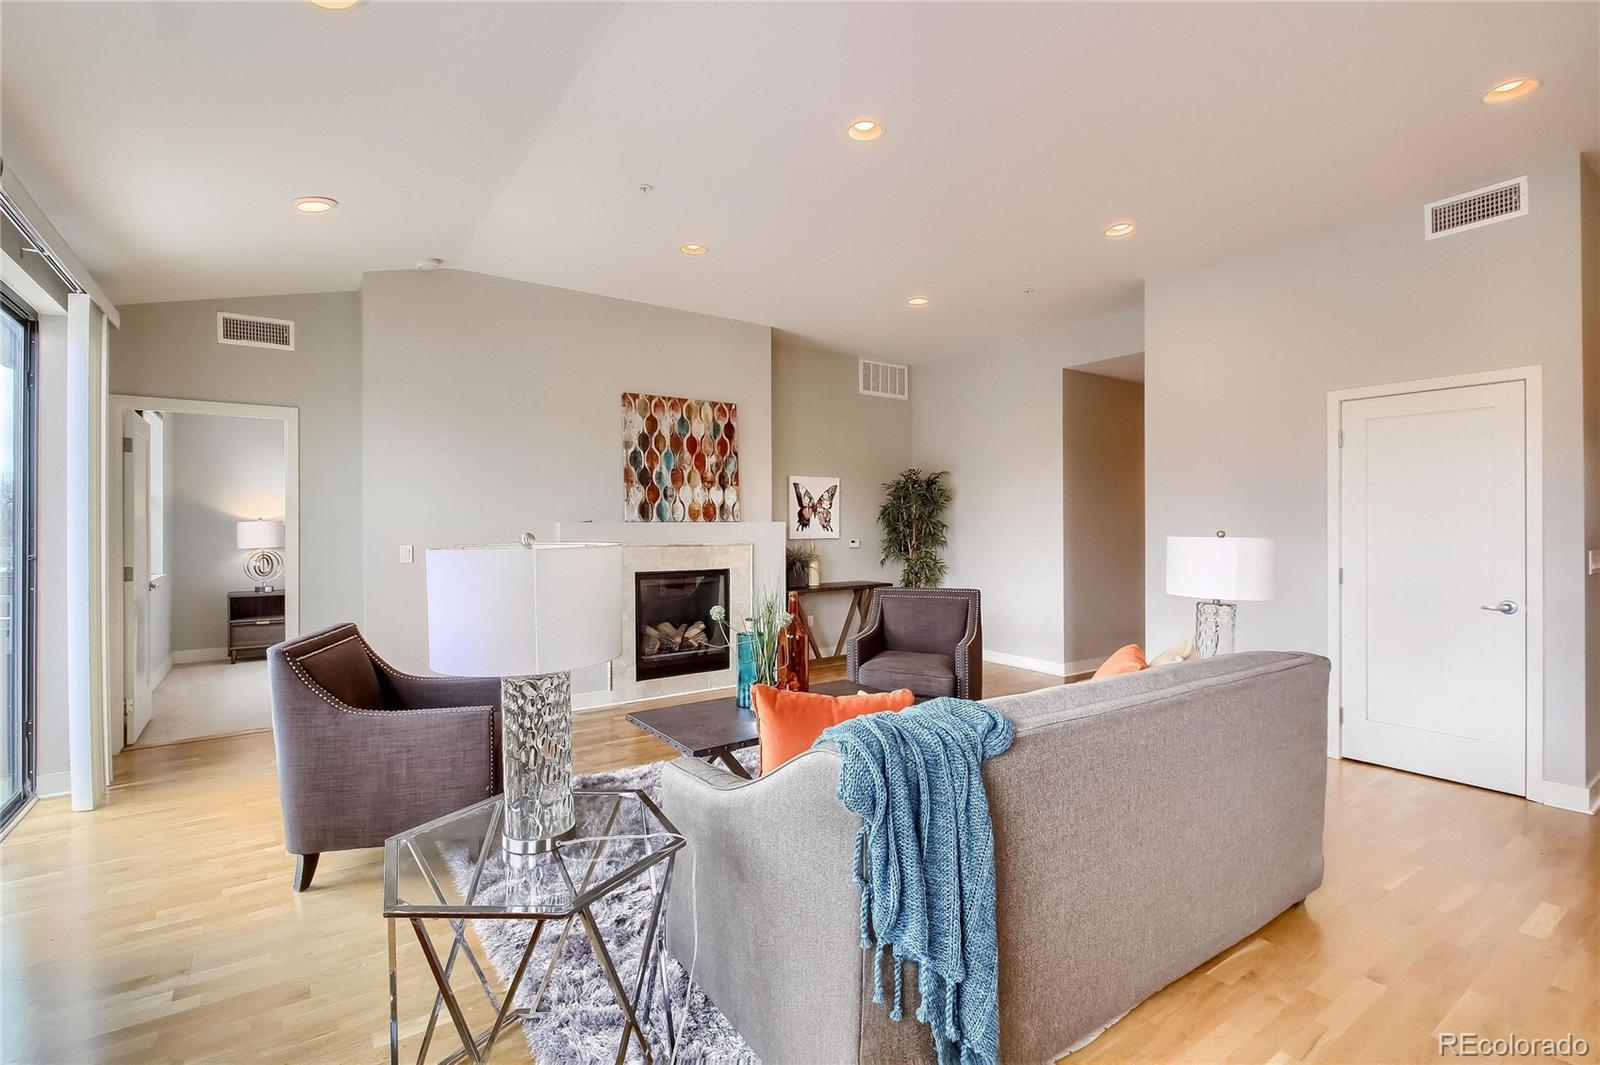 MLS# 4513203 - 7 - 360 S Lafayette Street #404, Denver, CO 80209